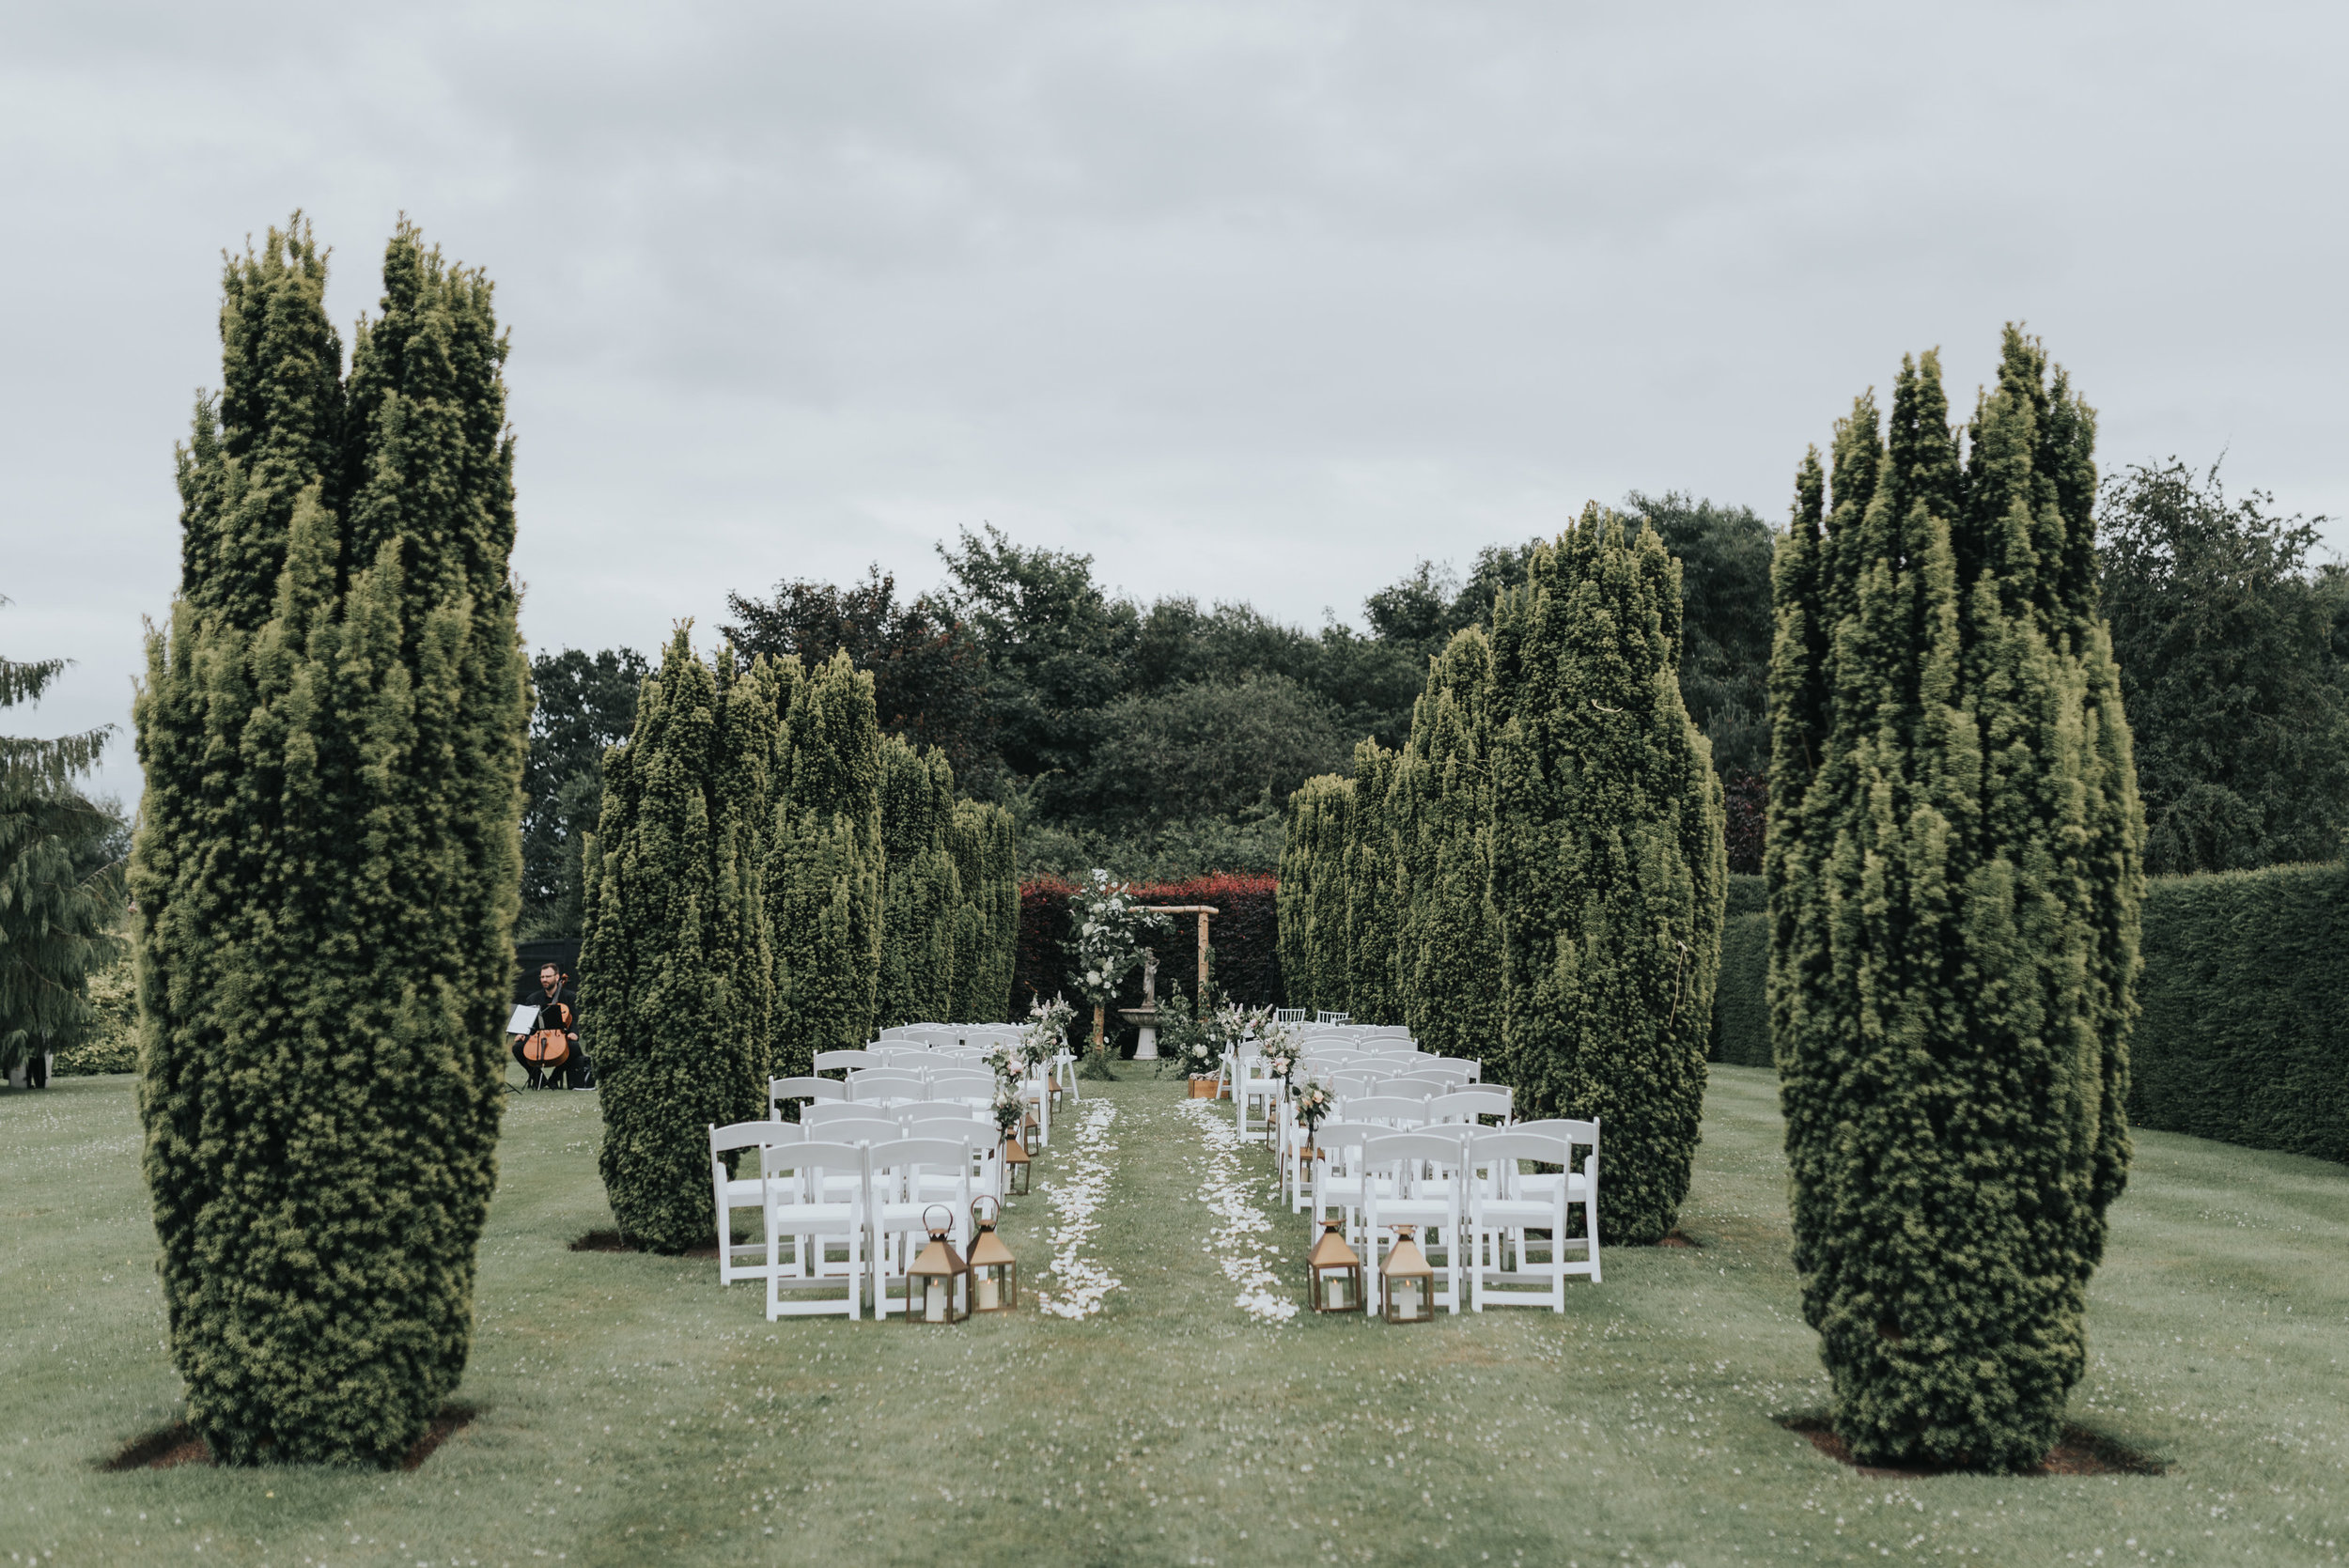 Cheshire wedding florals - outside ceremony